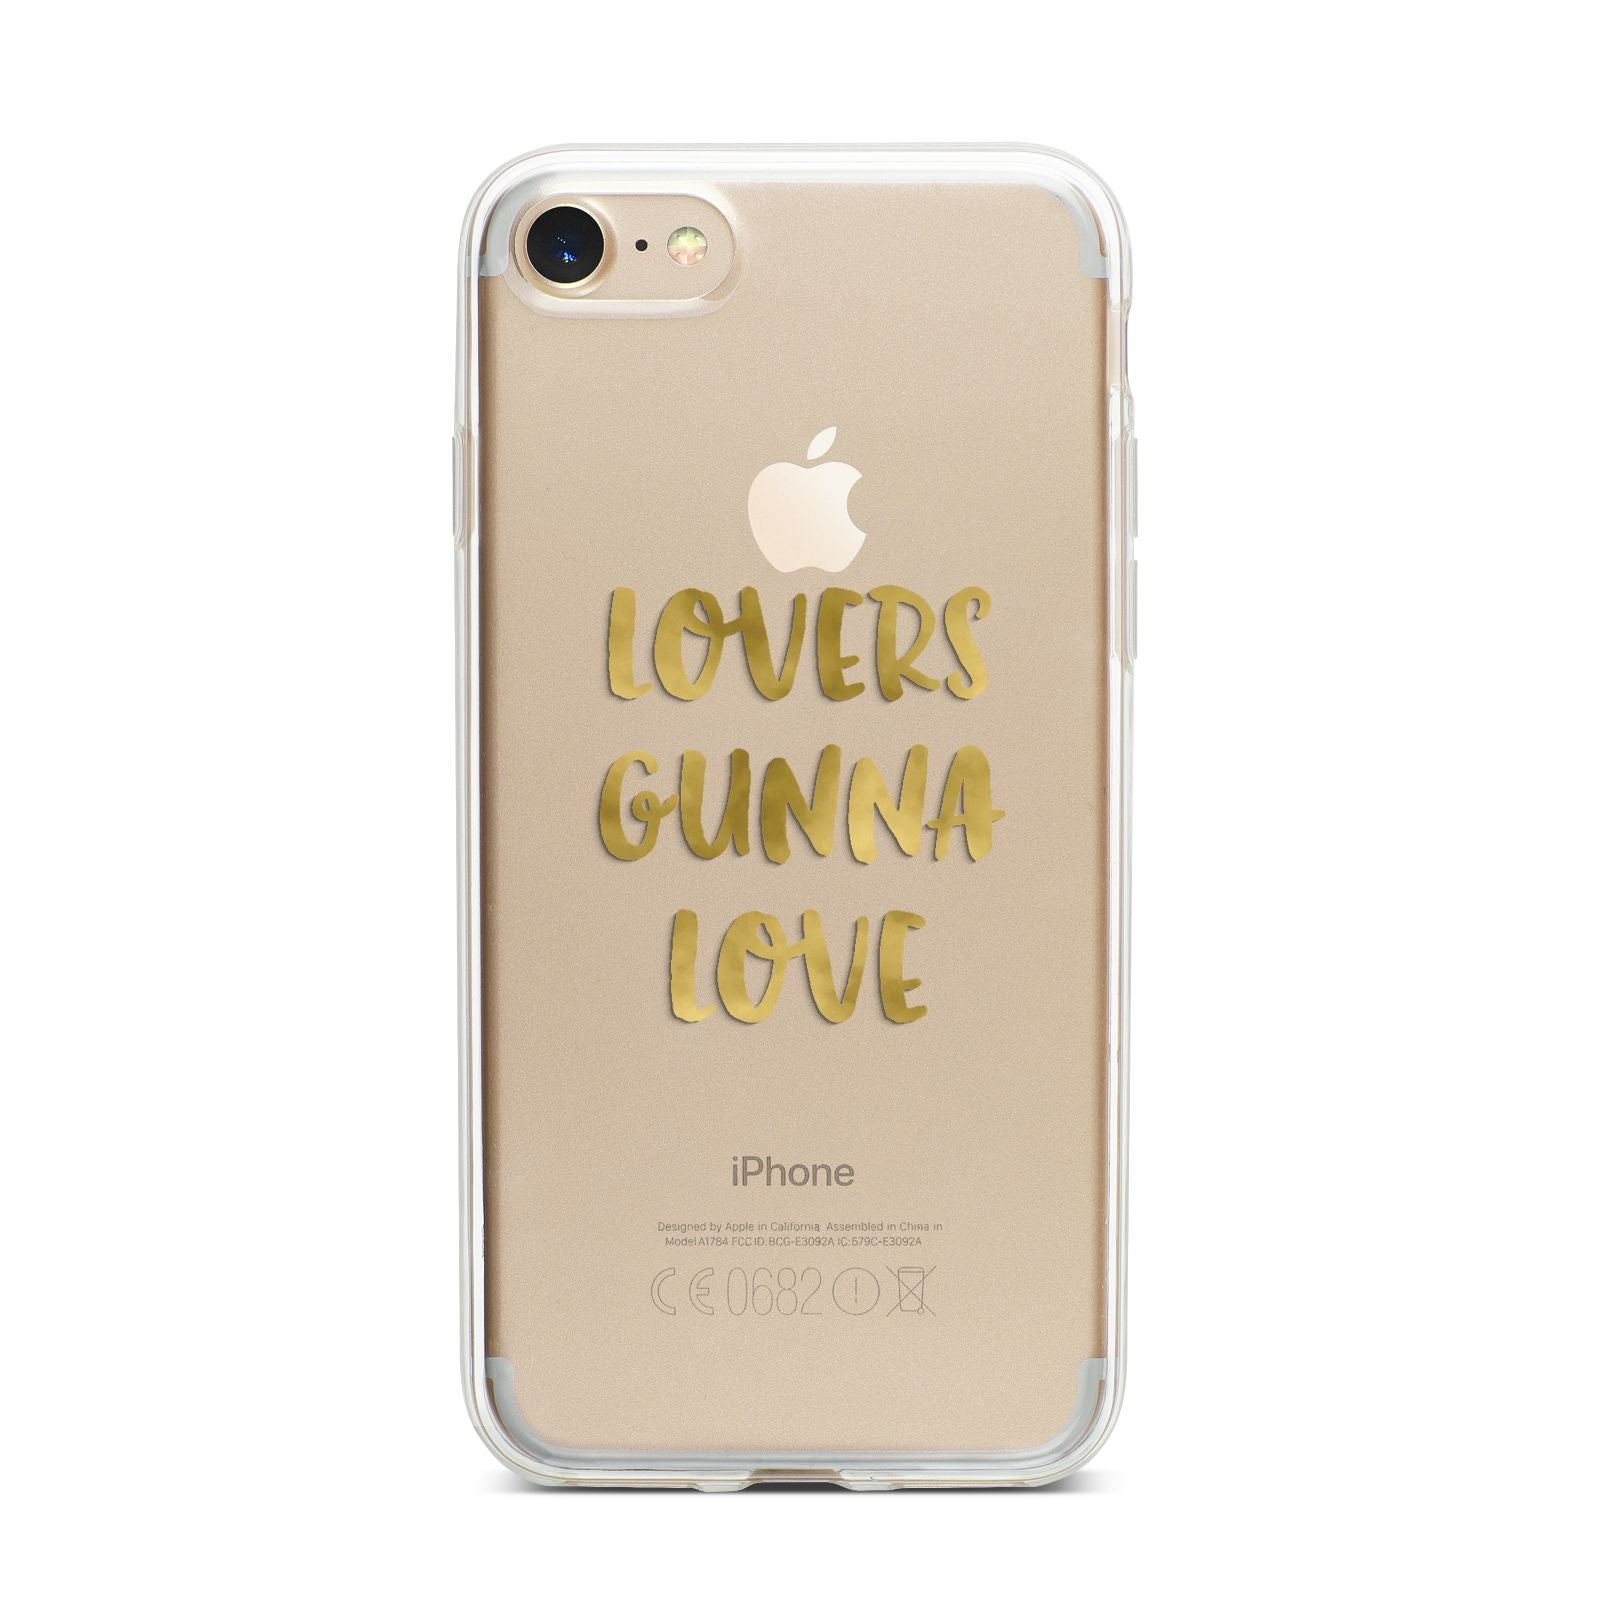 Lovers Gunna Love Real Gold Foil iPhone 7 Bumper Case on Gold iPhone